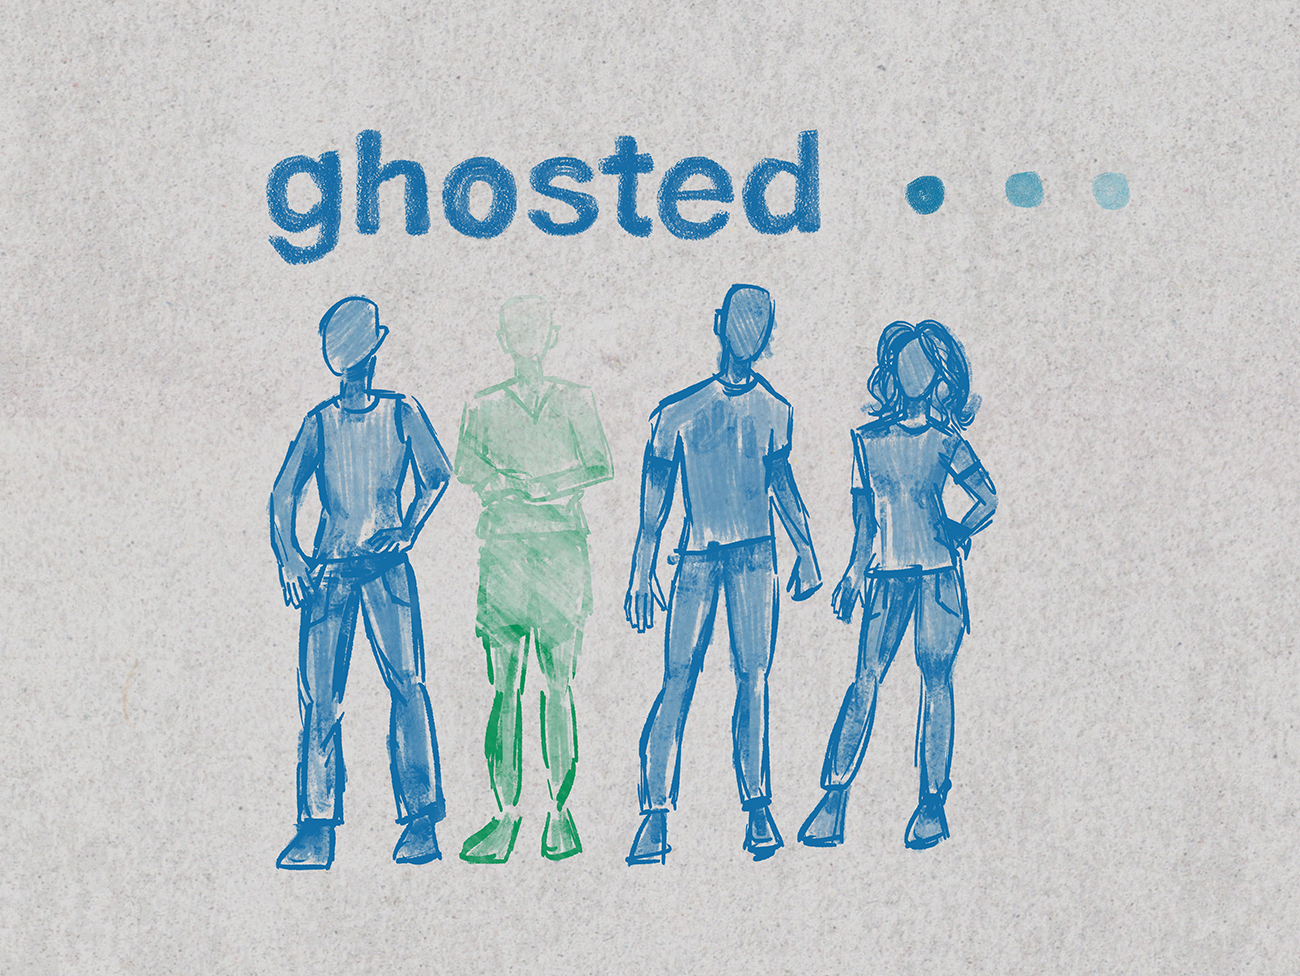 "sketch drawing of 4 individuals, one of which is fading away. headlined by the word ""ghosted..."""